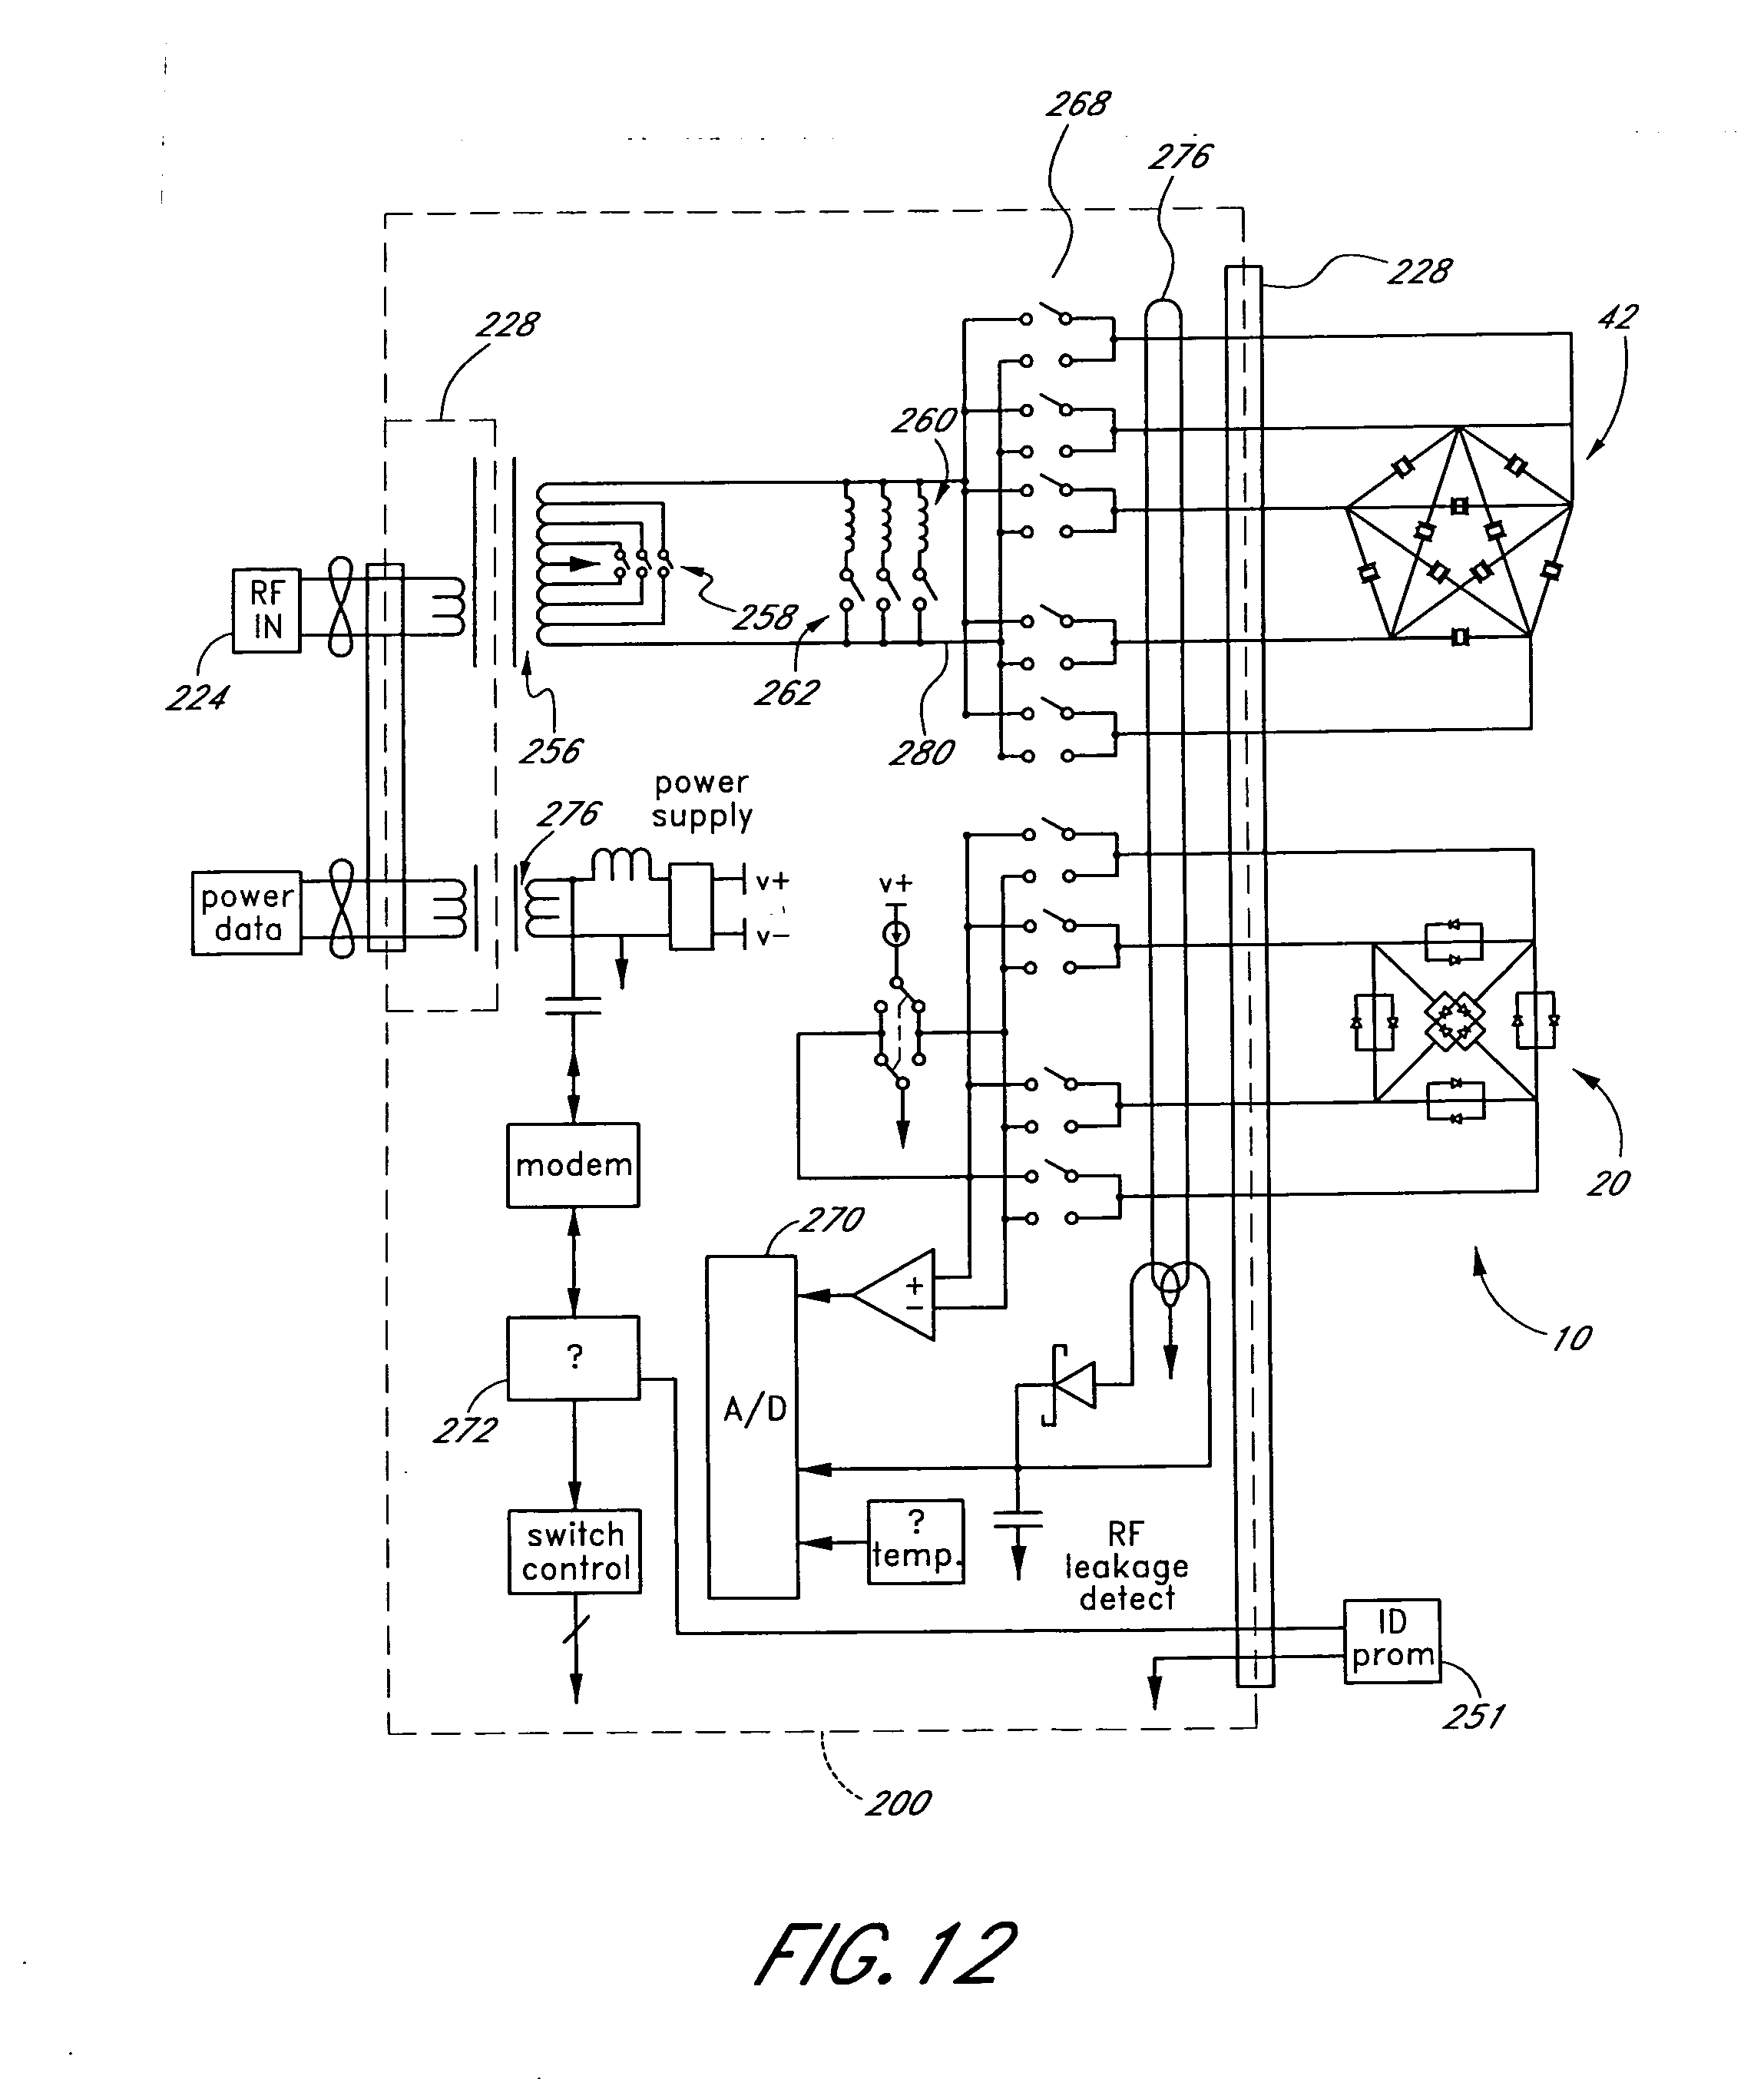 US8387193 in addition RepairGuideContent moreover US6092619 moreover Wiring Diagram At Home furthermore US8387193. on driving zone control system